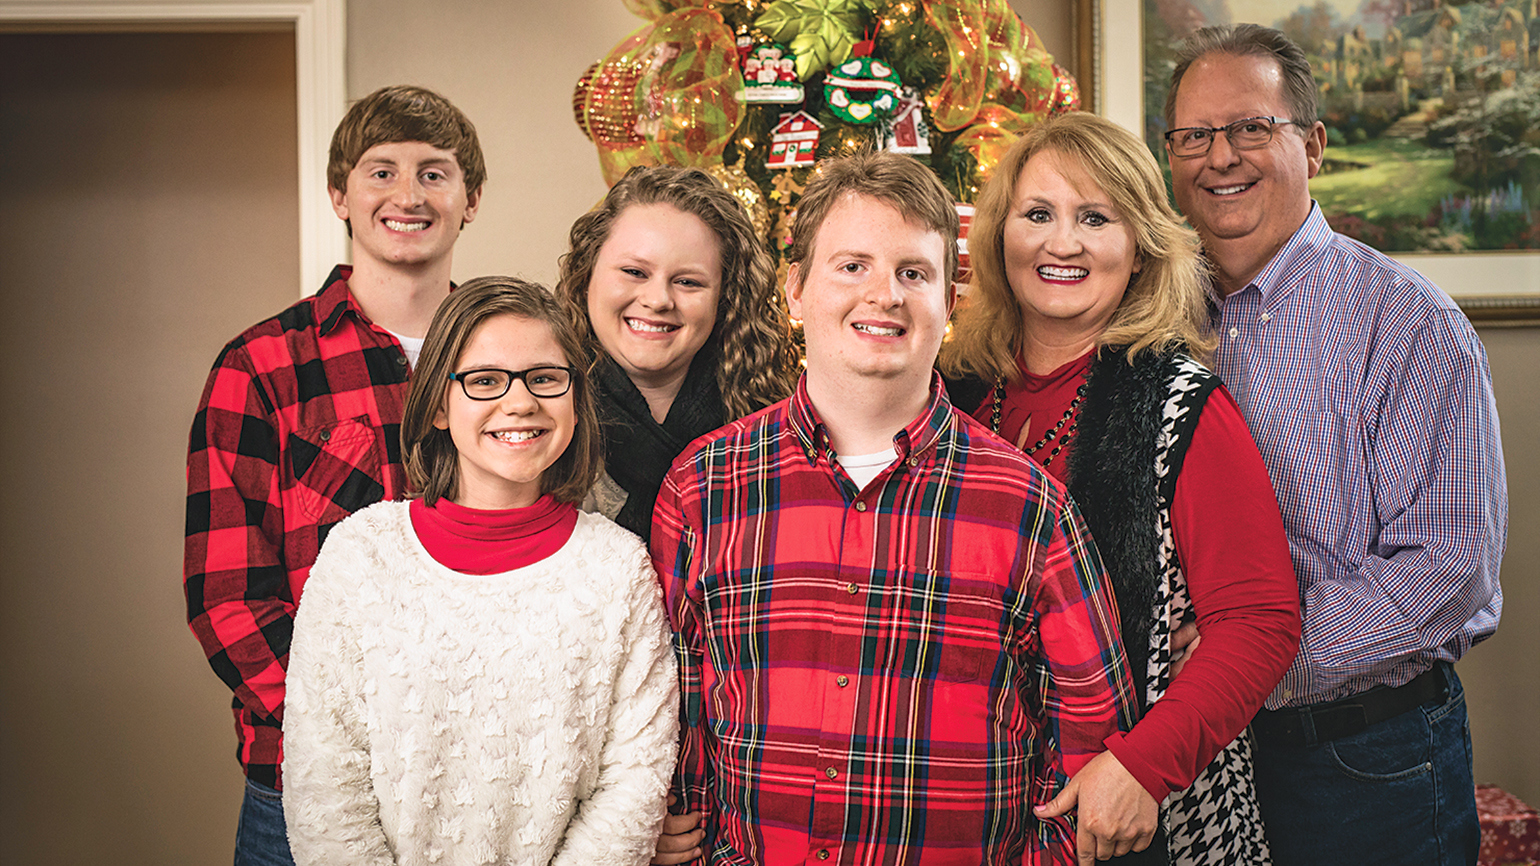 The Roark family: (from L to R) Casey, Diana, Carly, Caleb, Diana and Jerry